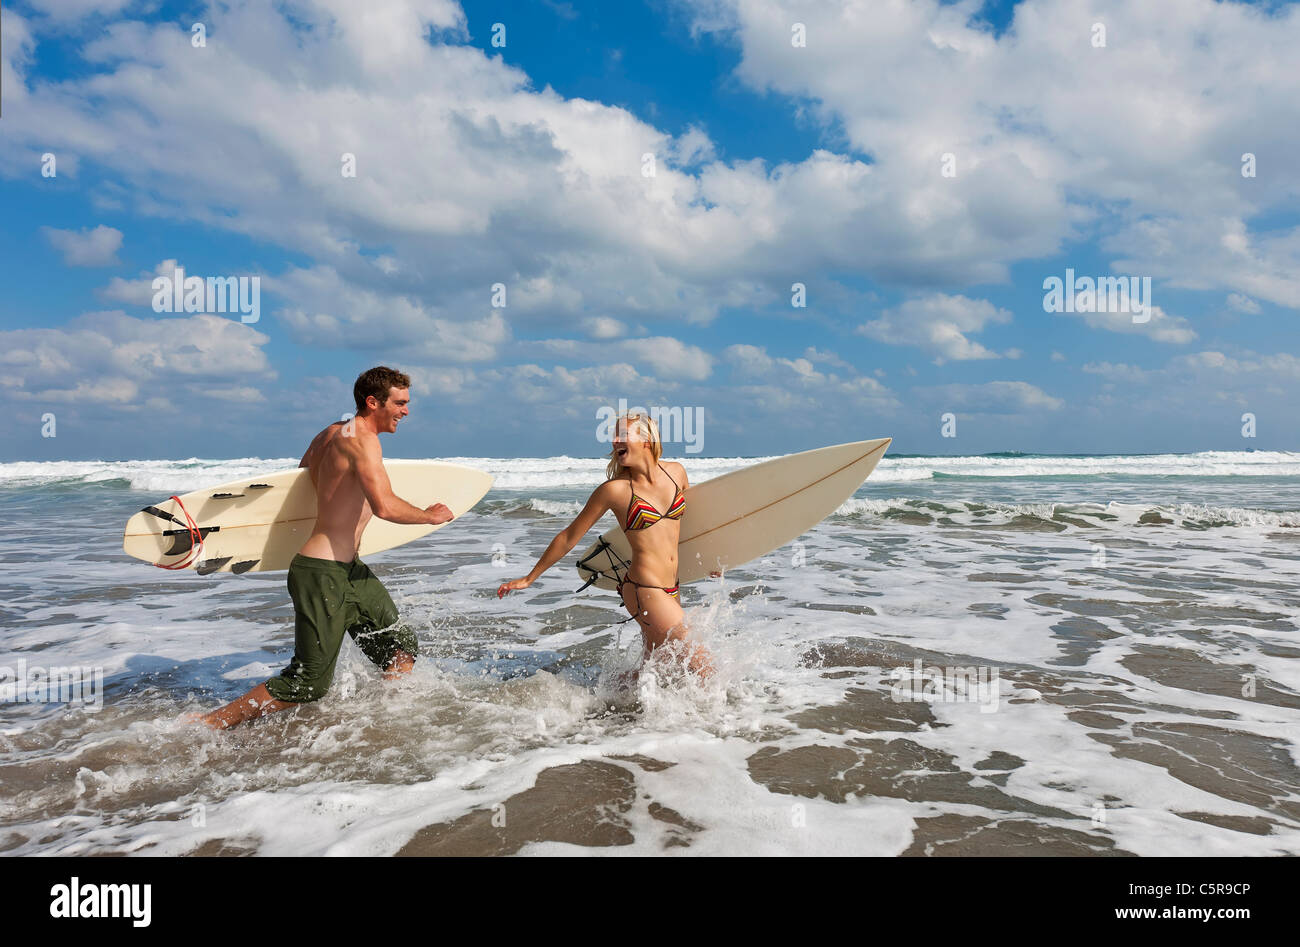 Two surfers having fun in the waves. - Stock Image